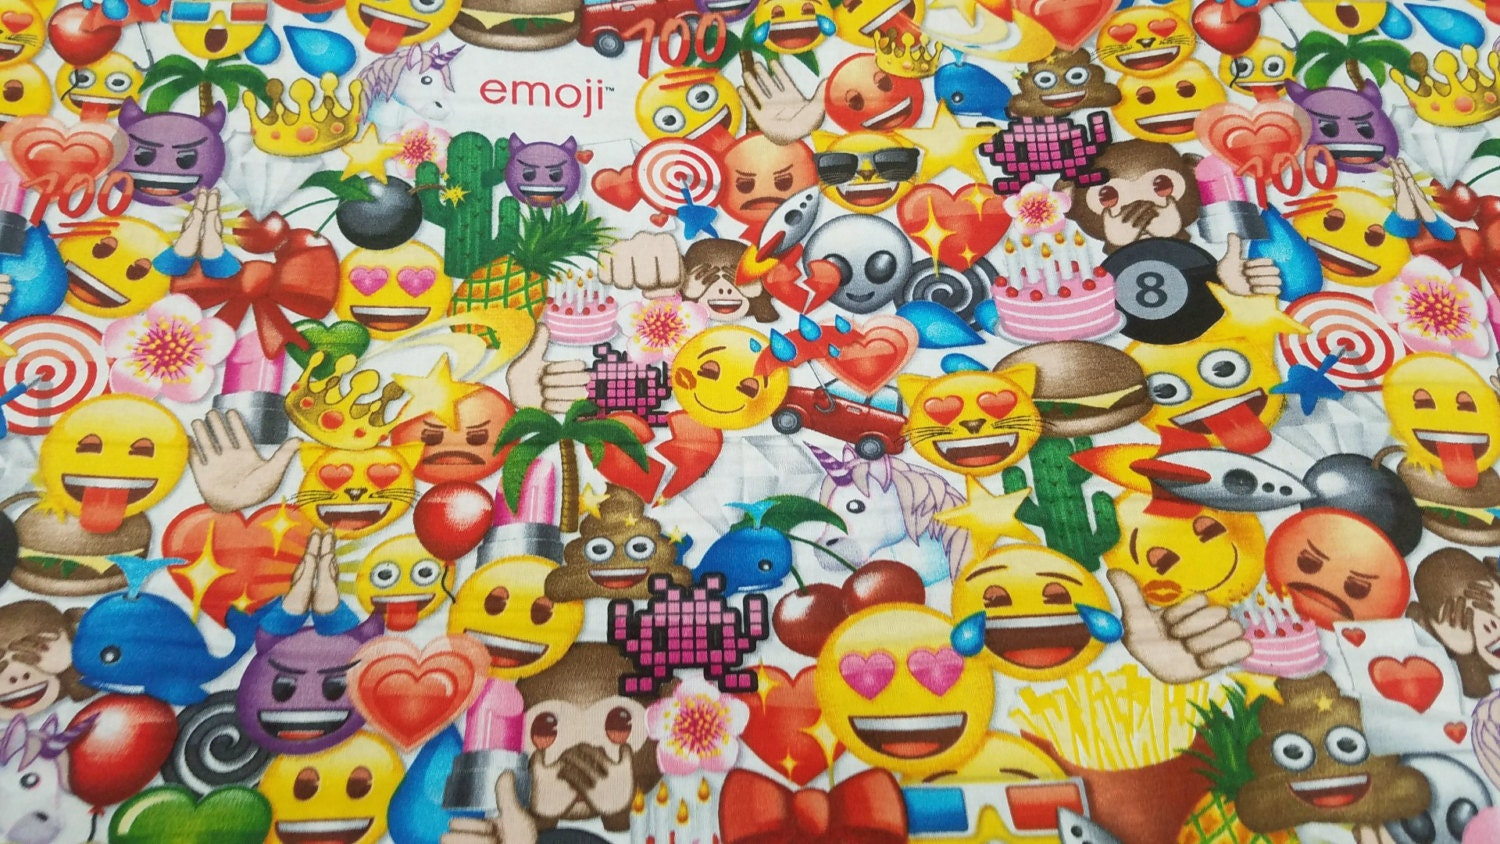 Allover emoji cotton print fabric david textiles by the yard for Emoji fabric